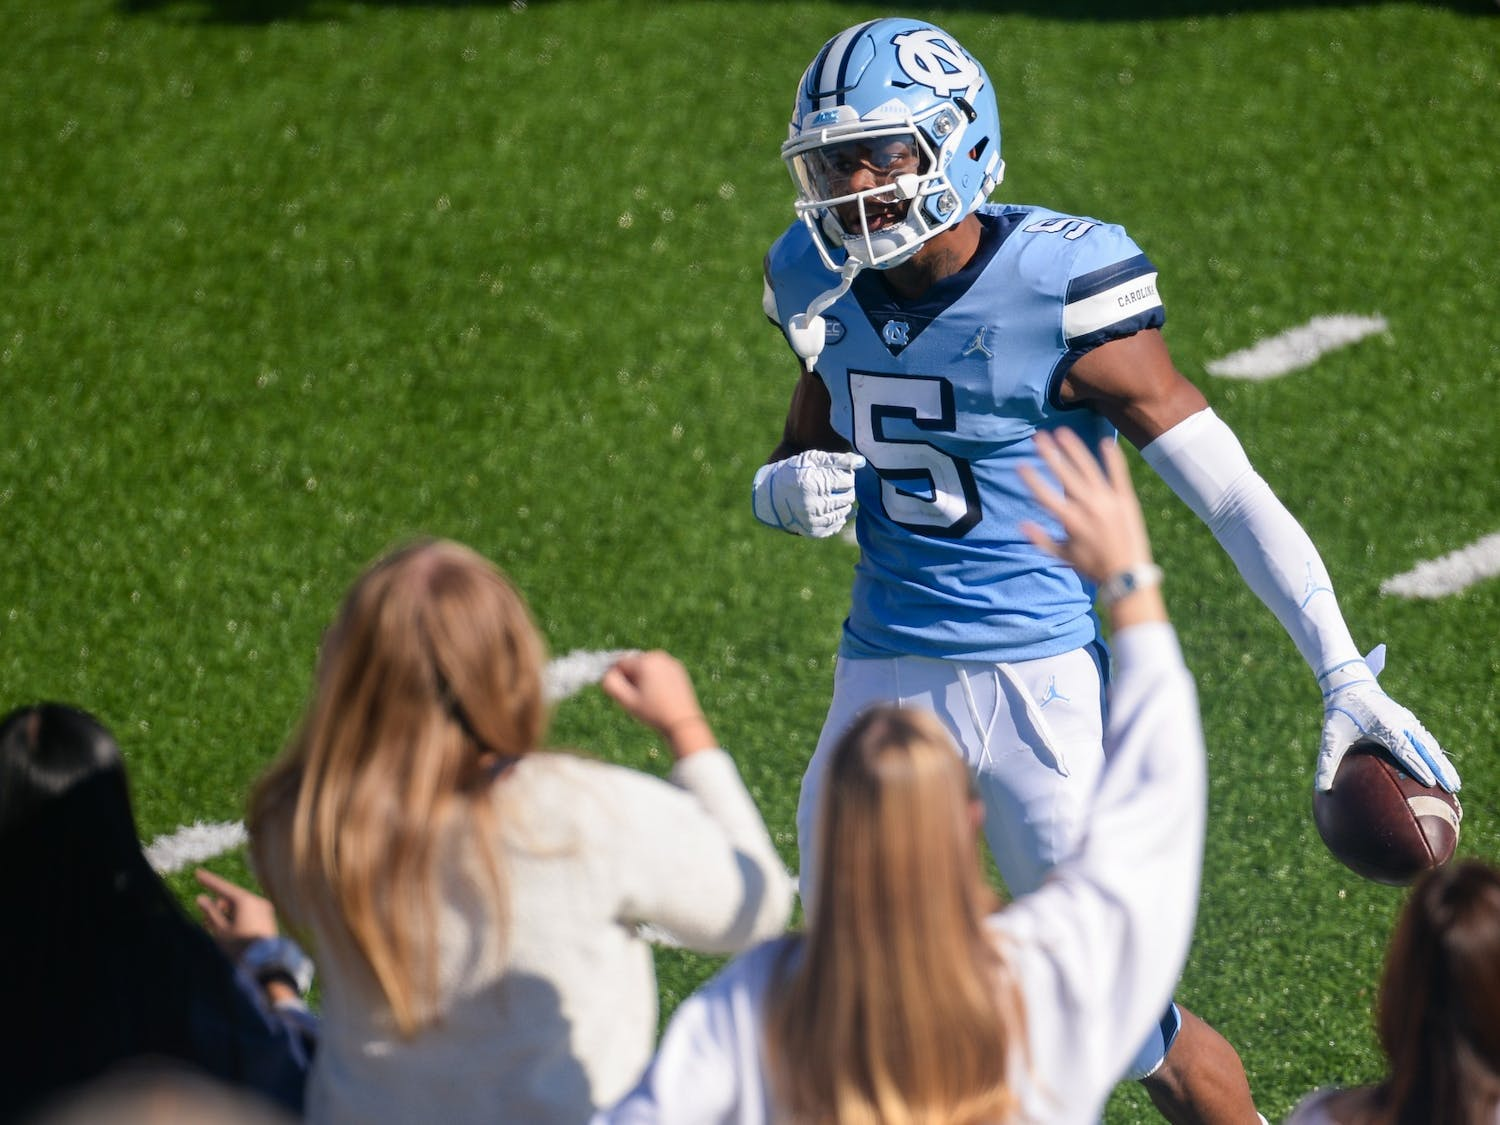 UNC senior wide receiver Dazz Newsome (5) celebrates a touchdown in front of the student section of Kenan Memorial Stadium during a game against Wake Forest on Saturday, Nov. 14, 2020. UNC beat Wake Forest 59-53.